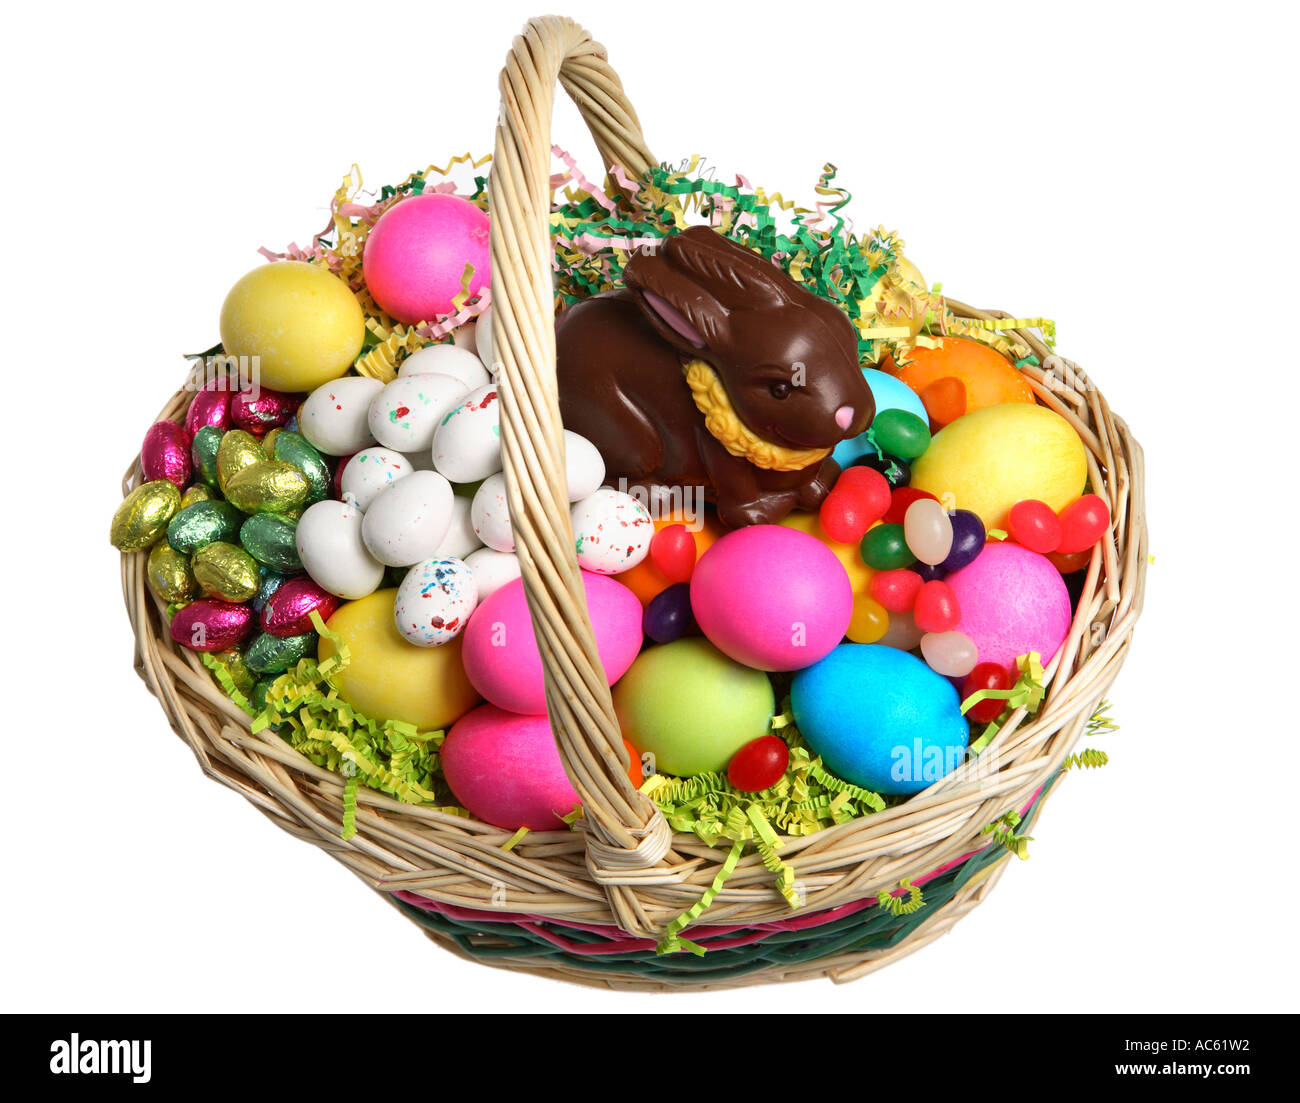 Easter Basket Filled With Eggs And Candy